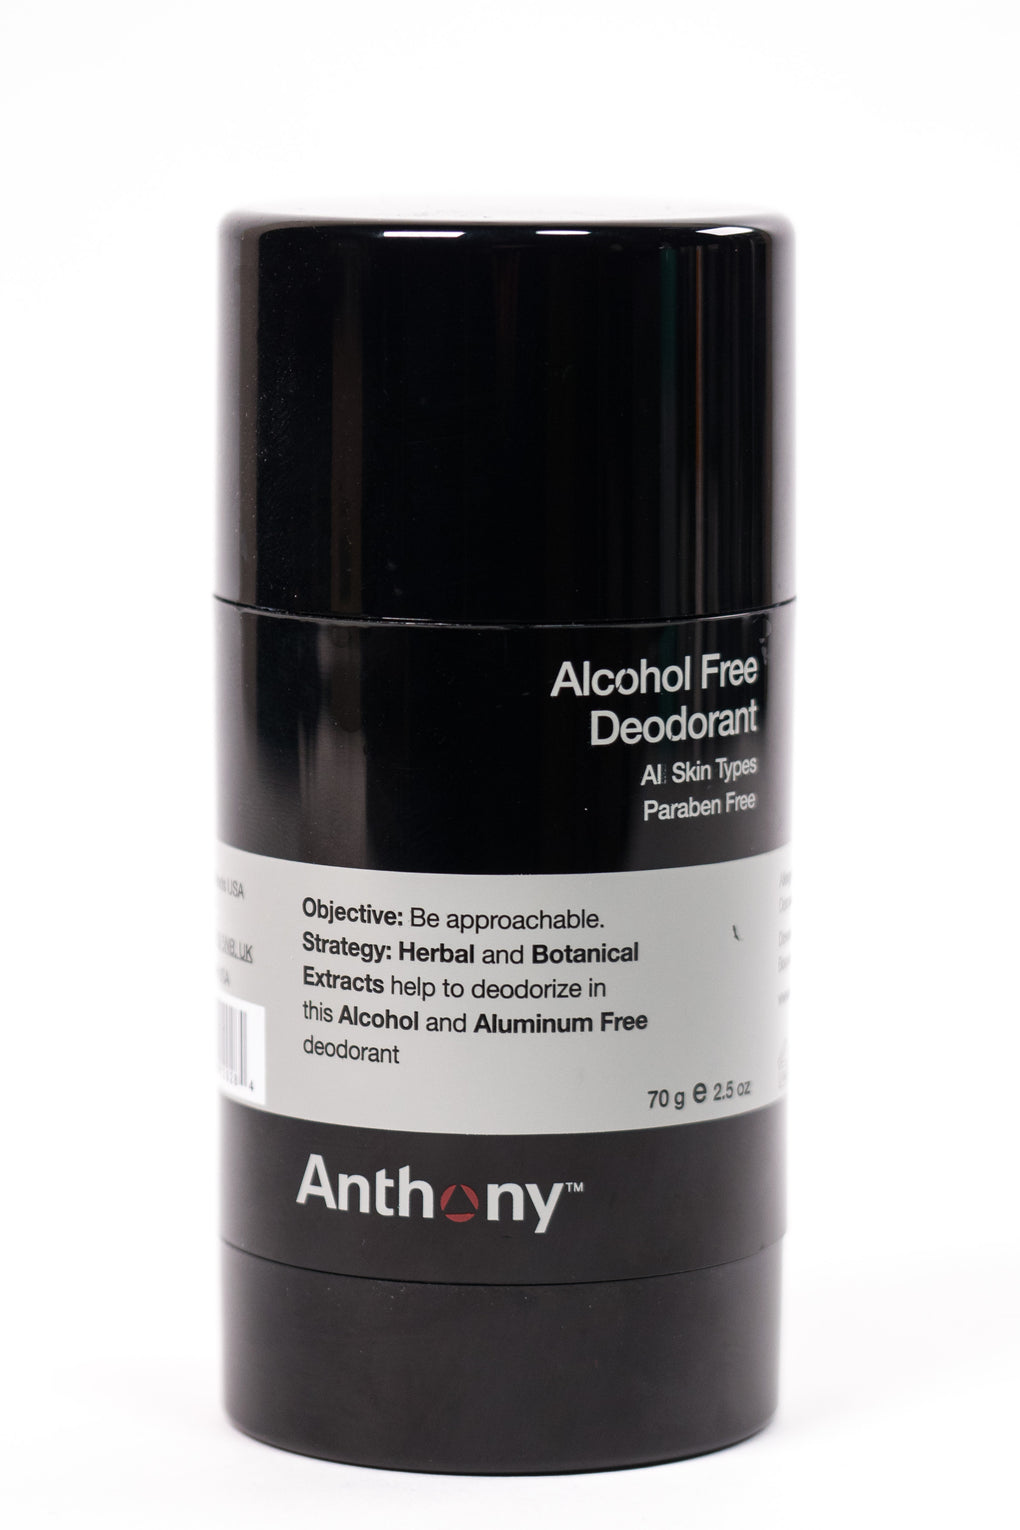 Anthony Alcohol-Free Deodorant at Consigliere